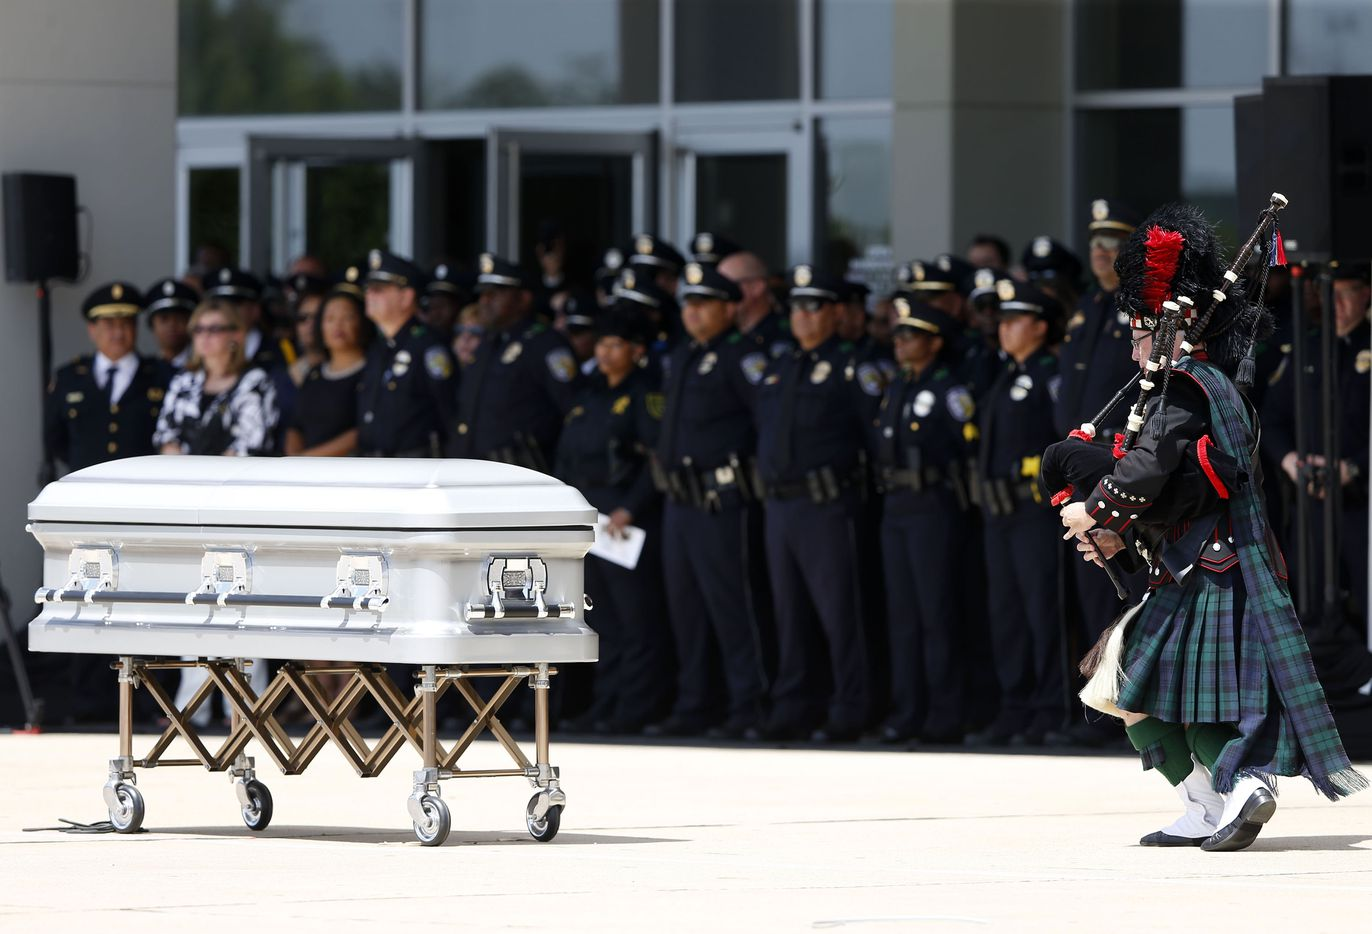 Bagpiper plays during a memorial service for DART Officer Brent Thompson at The Potter's House in Dallas on Wednesday, July 13, 2016. Thompson was one of five officers killed last week when a gunman opened fire during a Black Lives Matter rally in downtown Dallas.